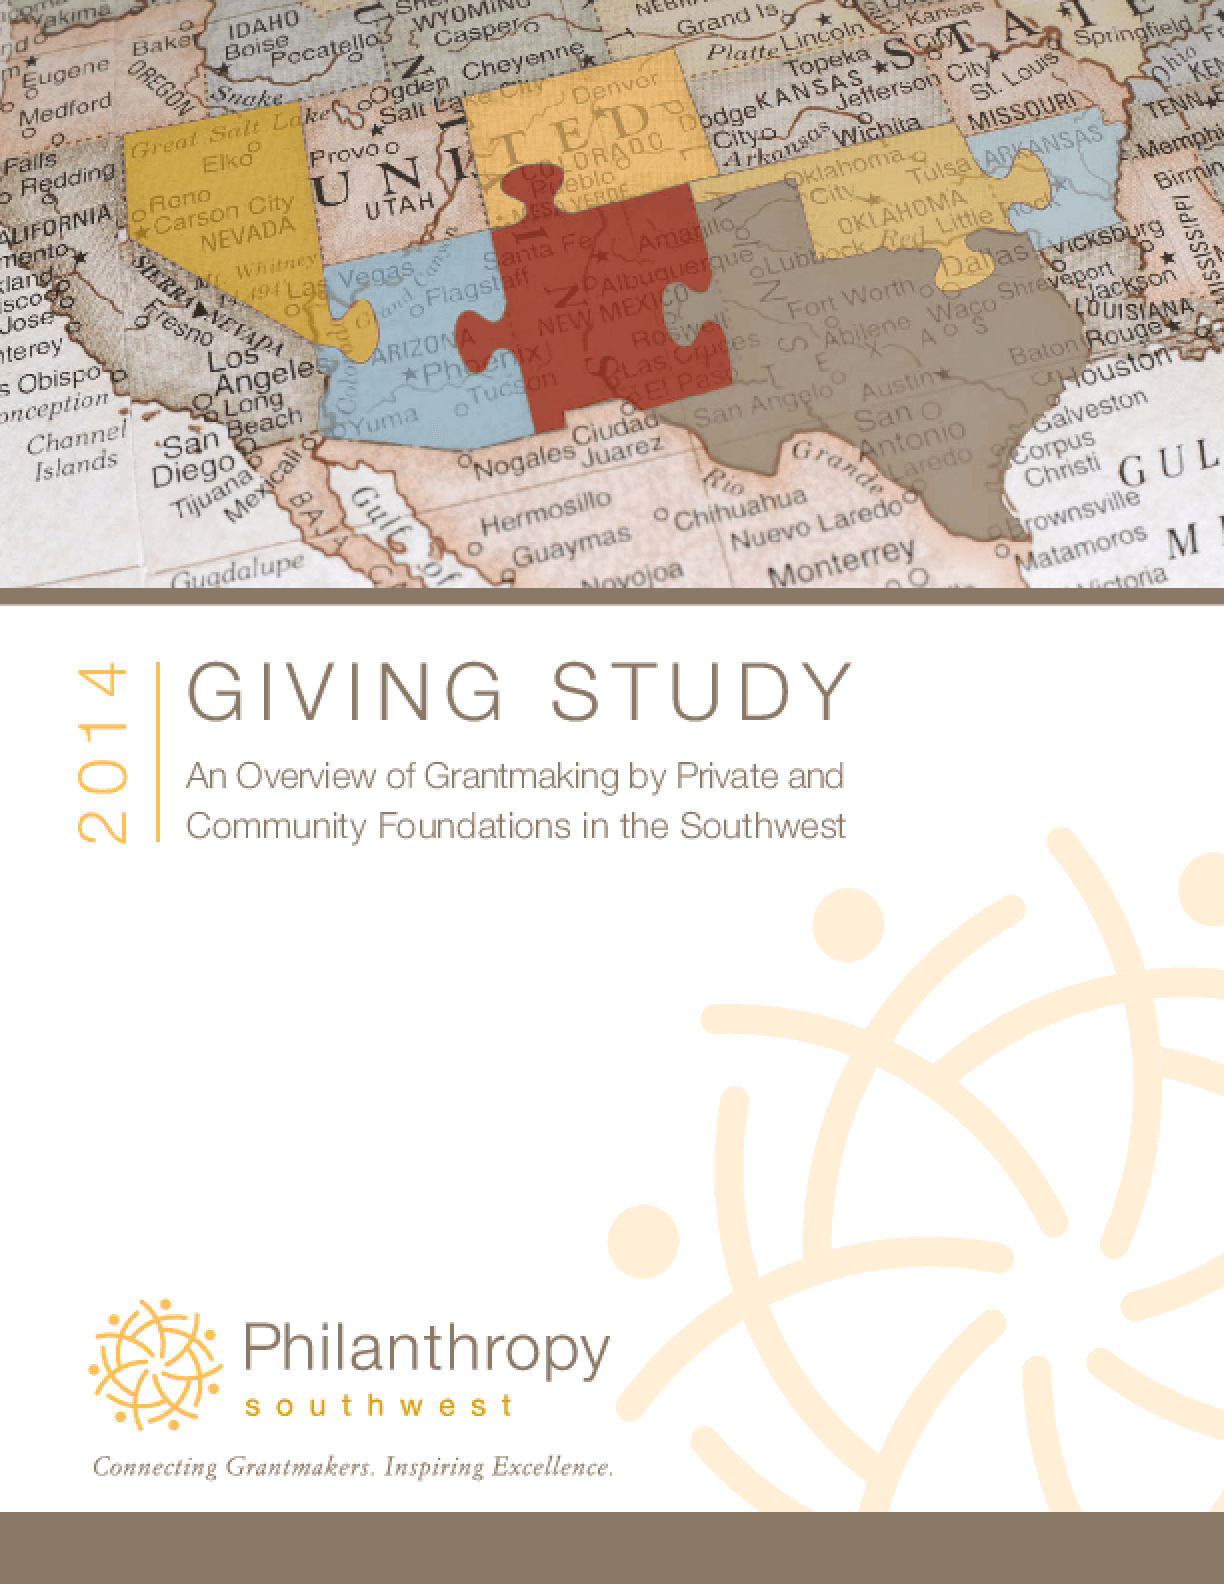 2014 Giving Study: An Overview of Grantmaking by Private and Community Foundations in the Southwest